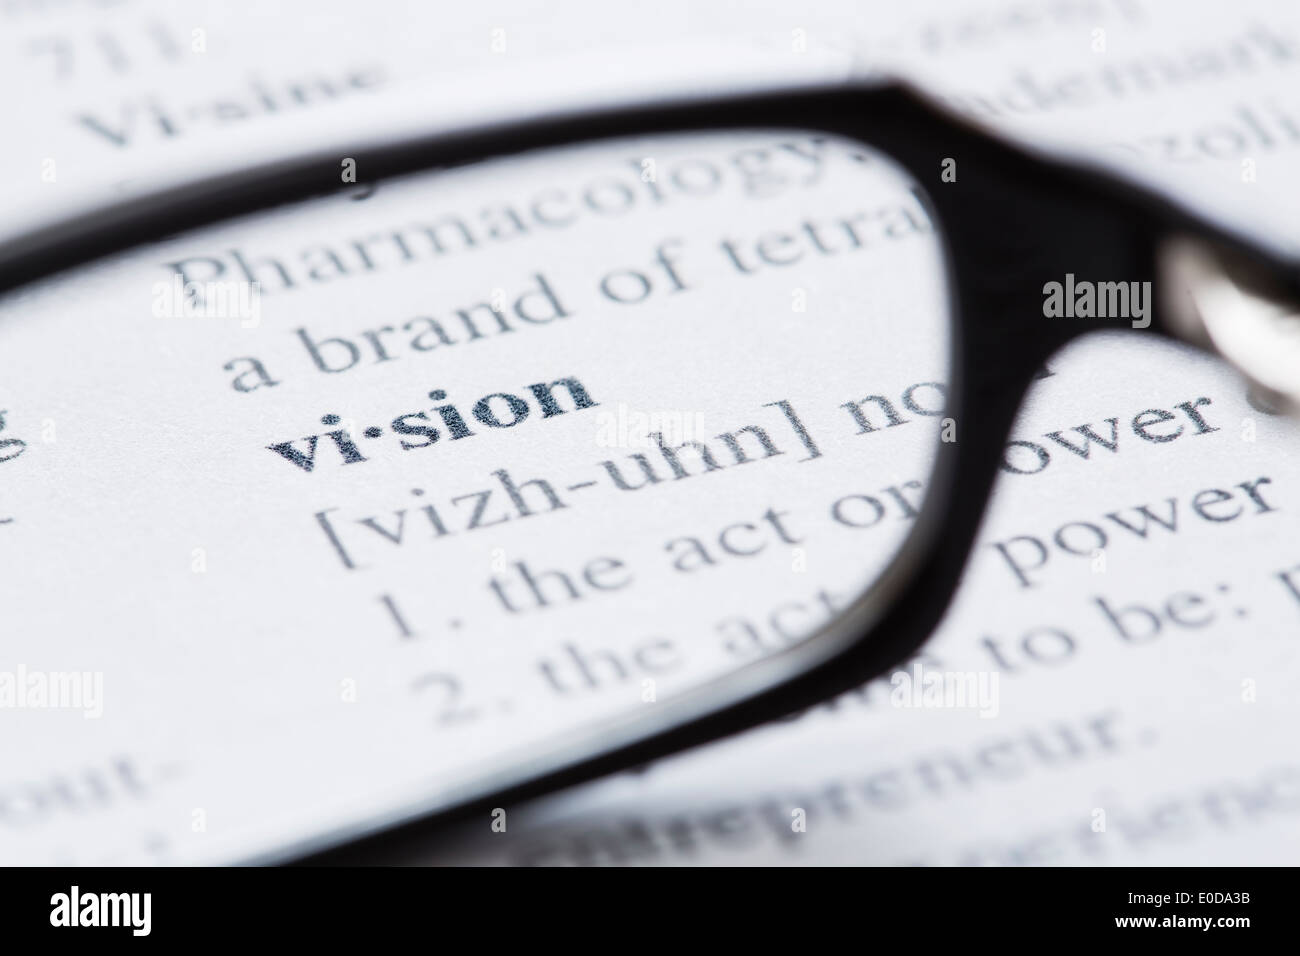 Definition of 'vision' in dictionary Stock Photo: 69134783